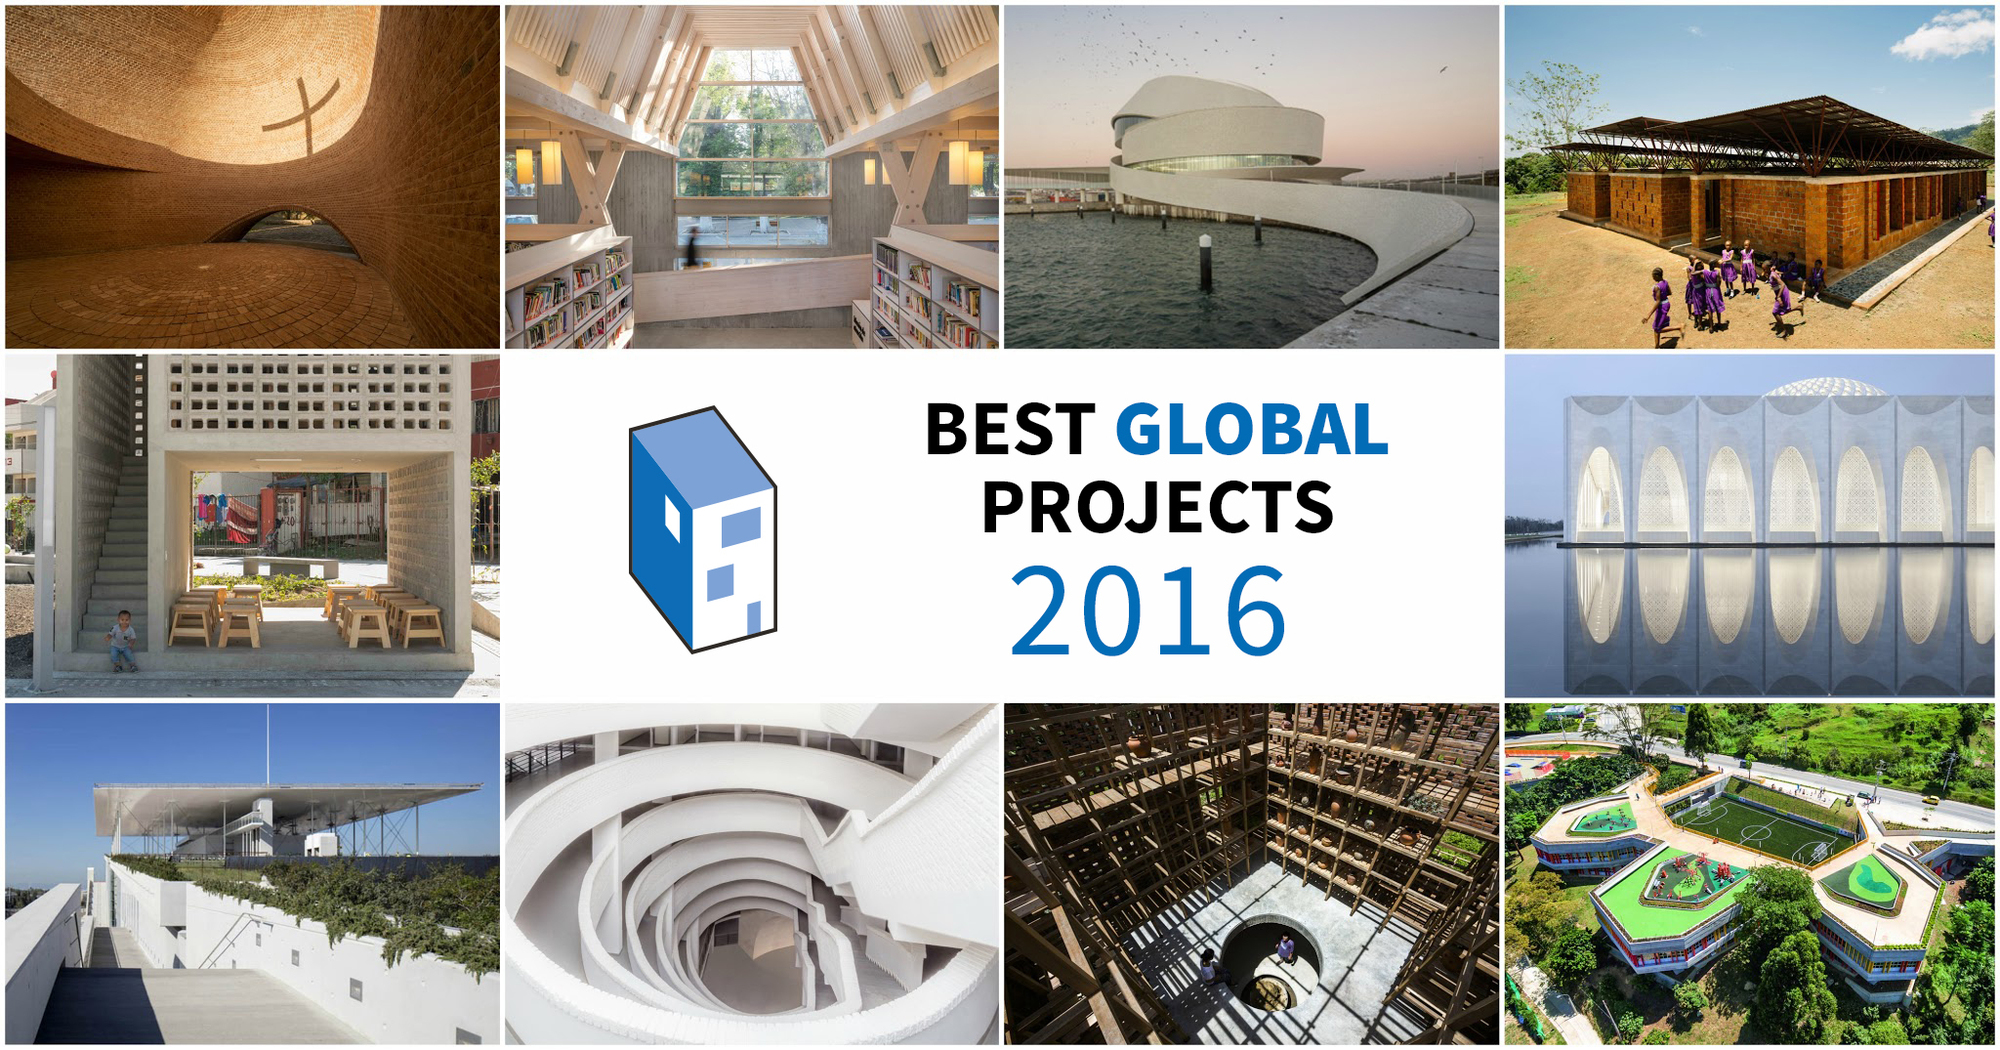 House design ethiopia - The 10 Best Global Architecture Projects Of 2016 Asia Africa And South